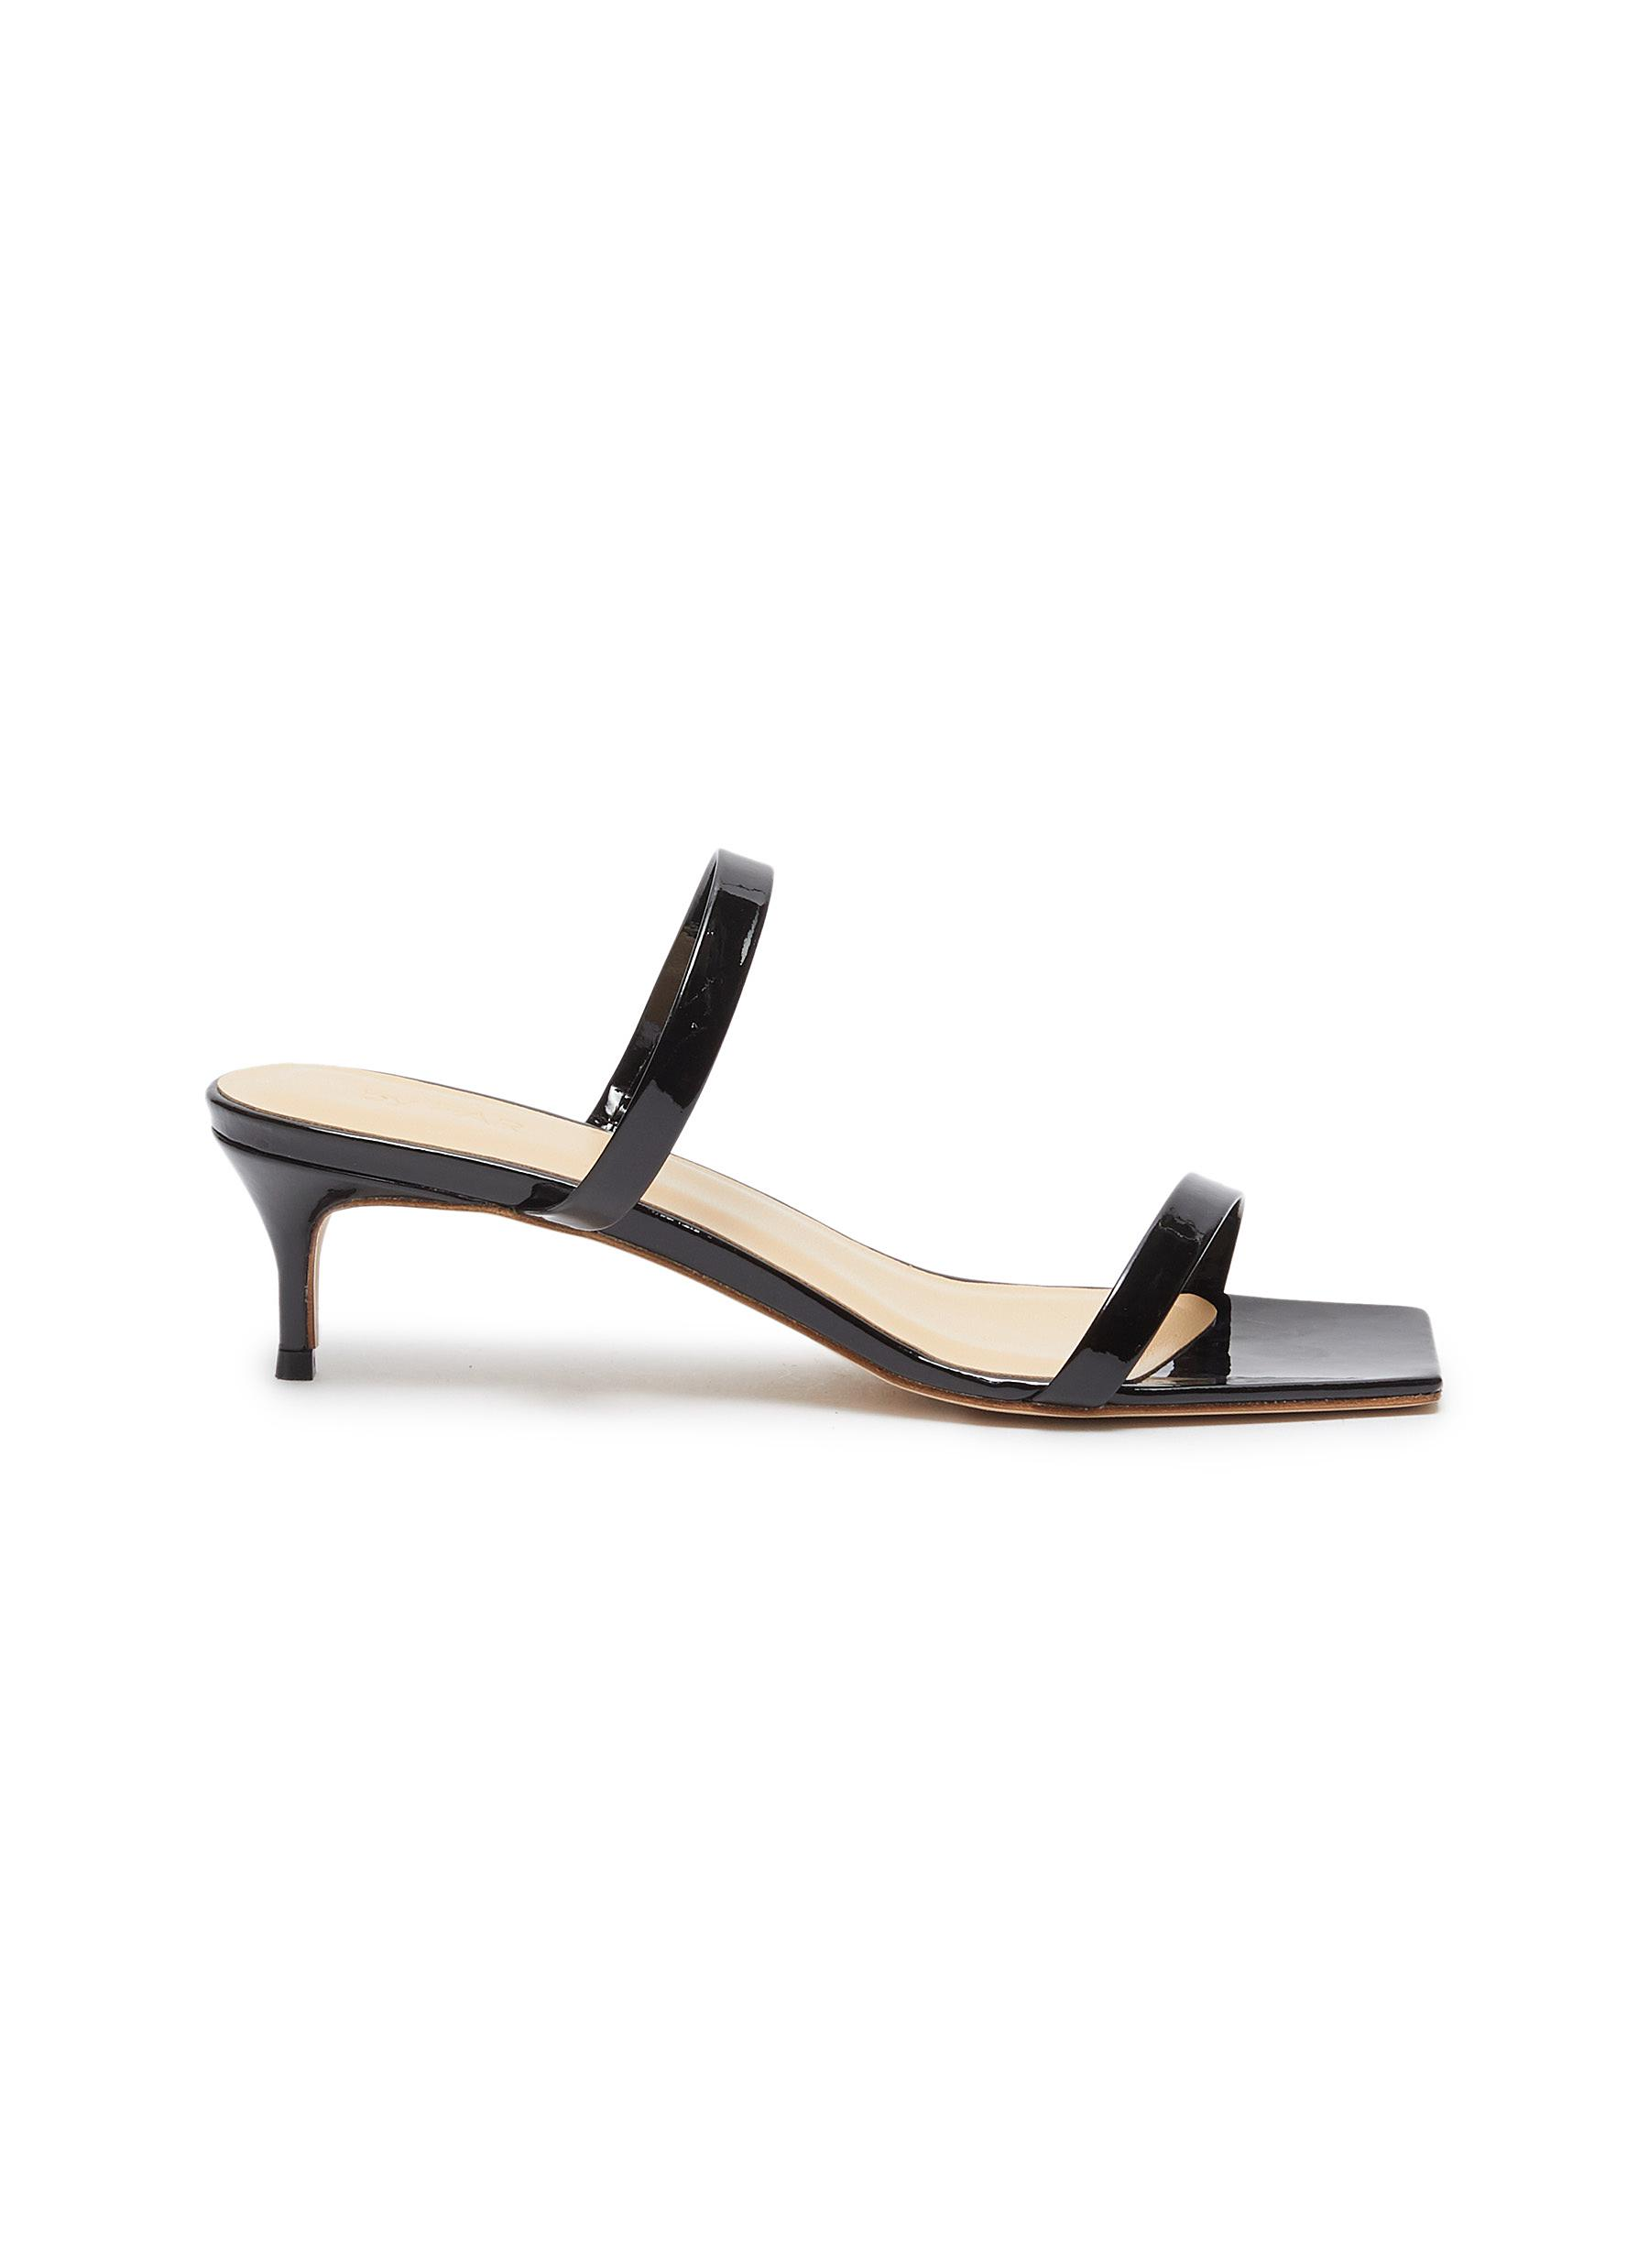 Thalia patent leather sandals by By Far